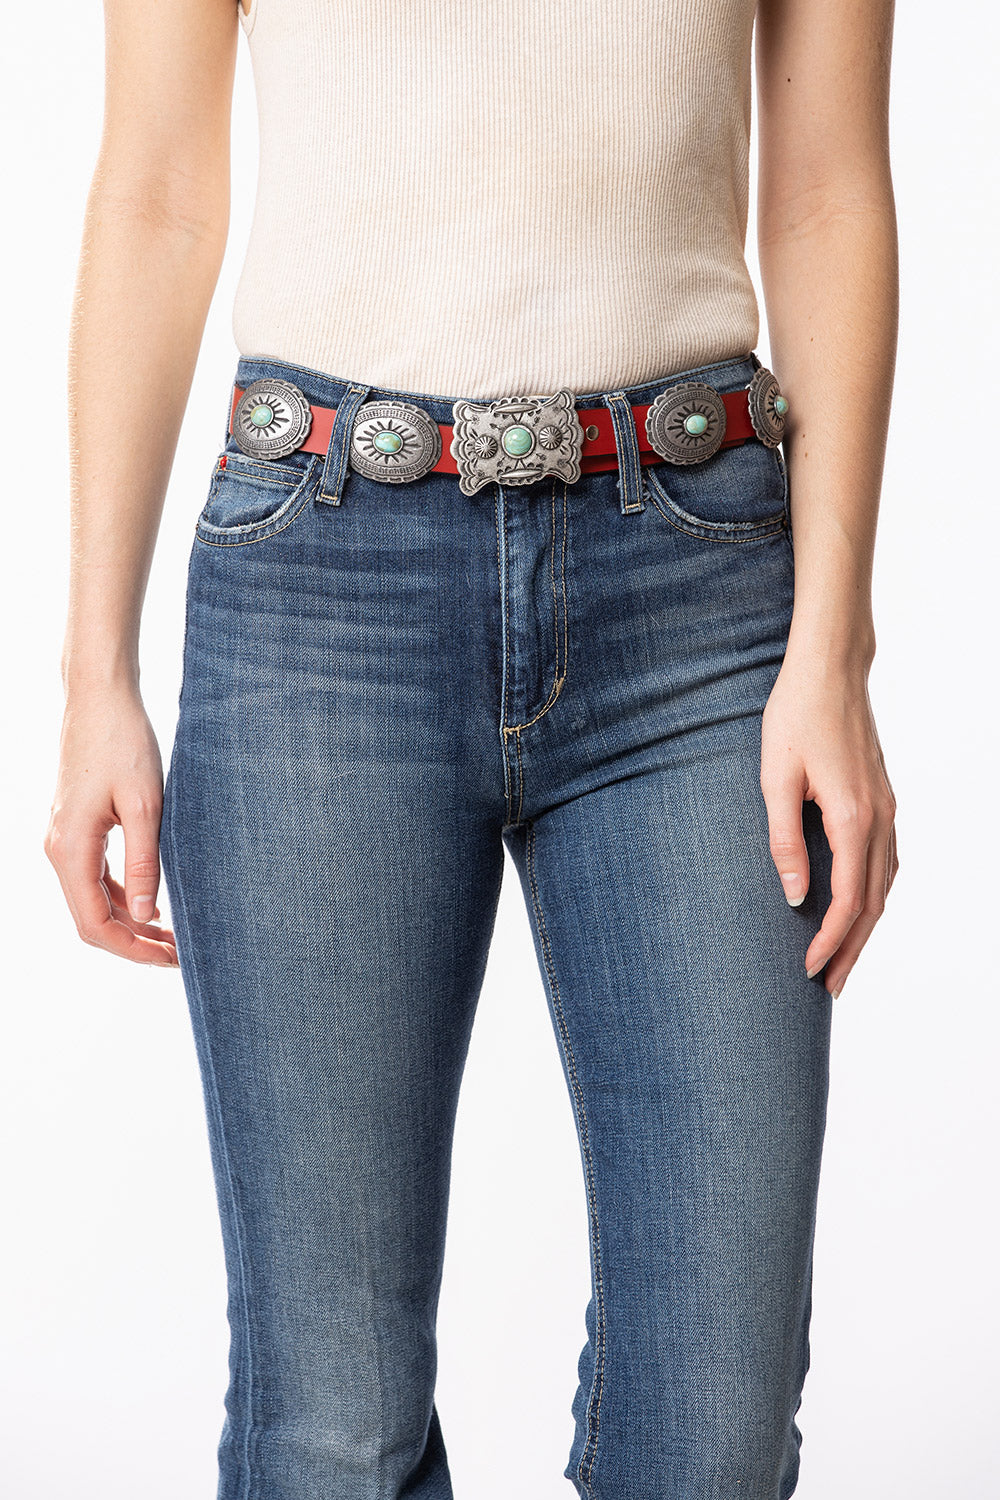 Balcones Concho Belt